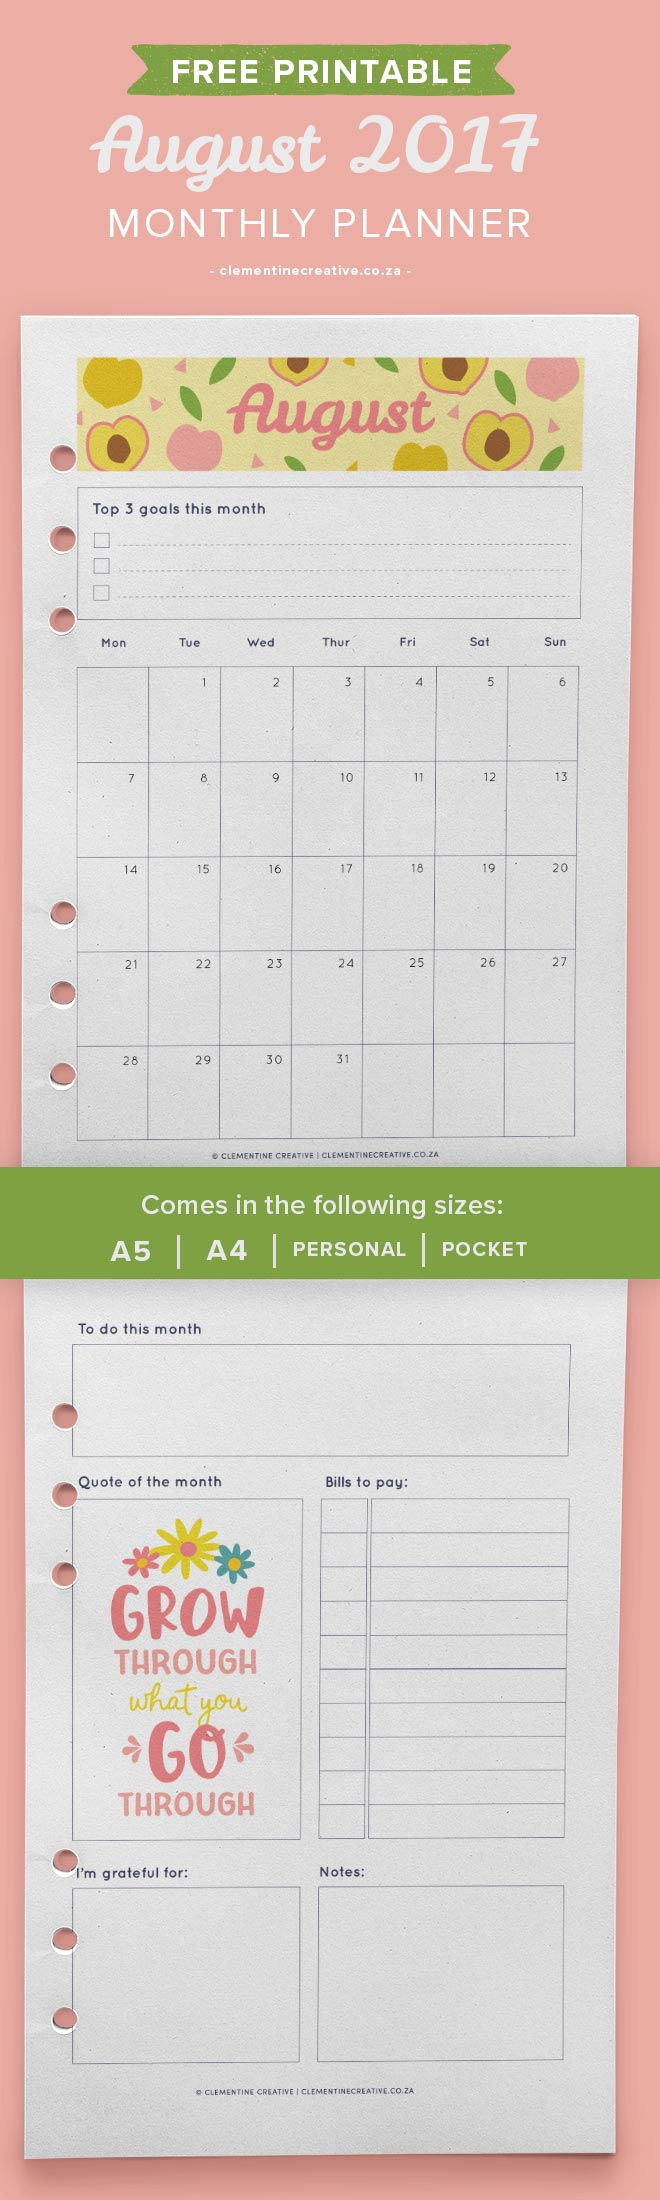 Download this free August 2017 monthly planner template here to plan your month. Choose from A4, A5, Pocket or Personal size. Write down your goals, projects, bills to pay and more.